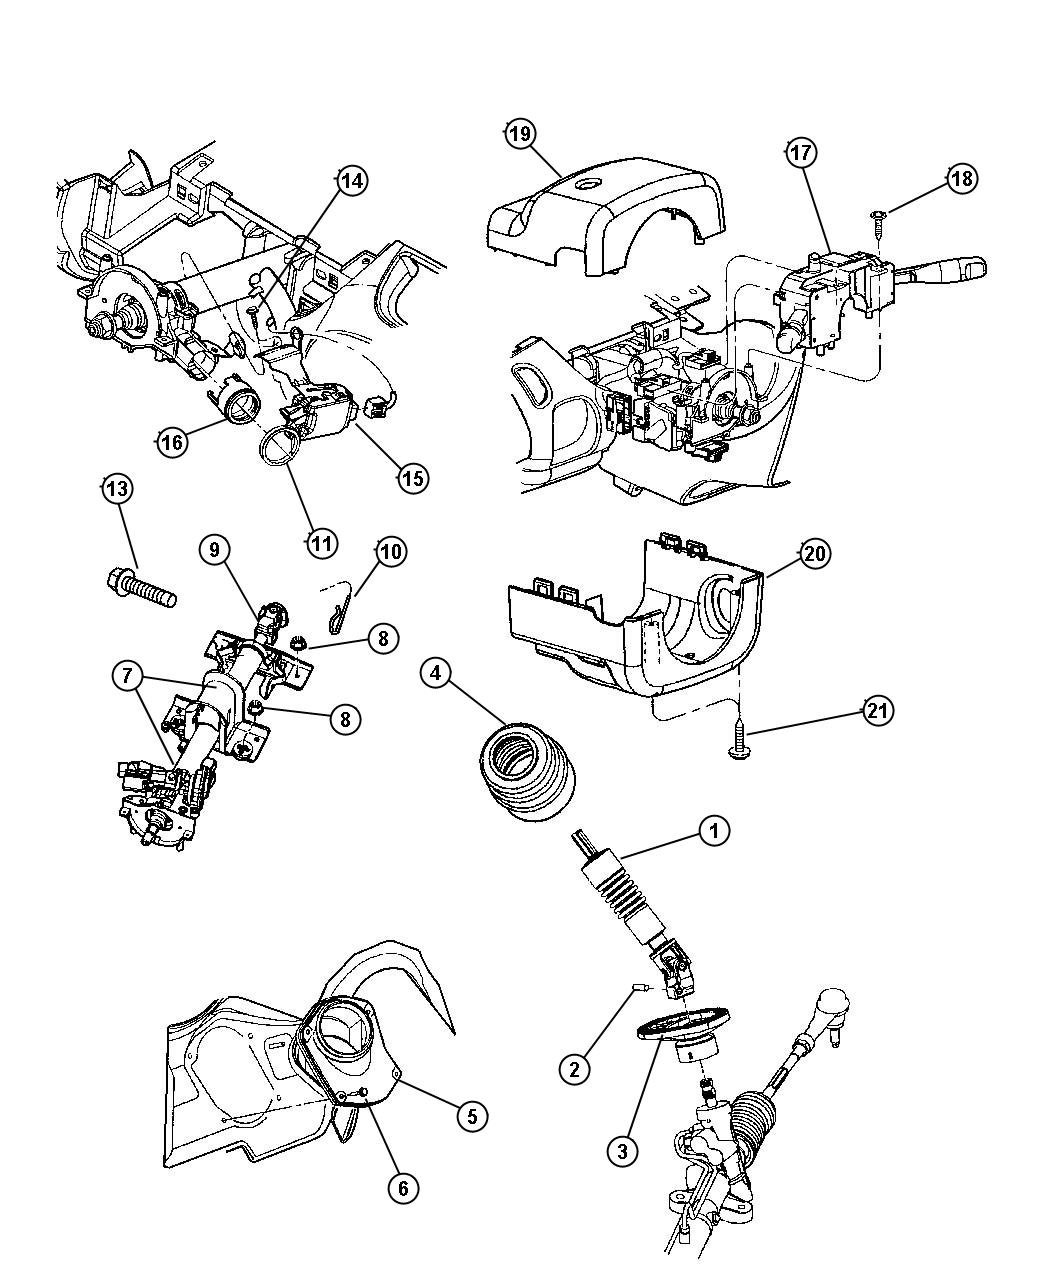 Dodge Neon Shroud. Steering column. [dv], dark quartz